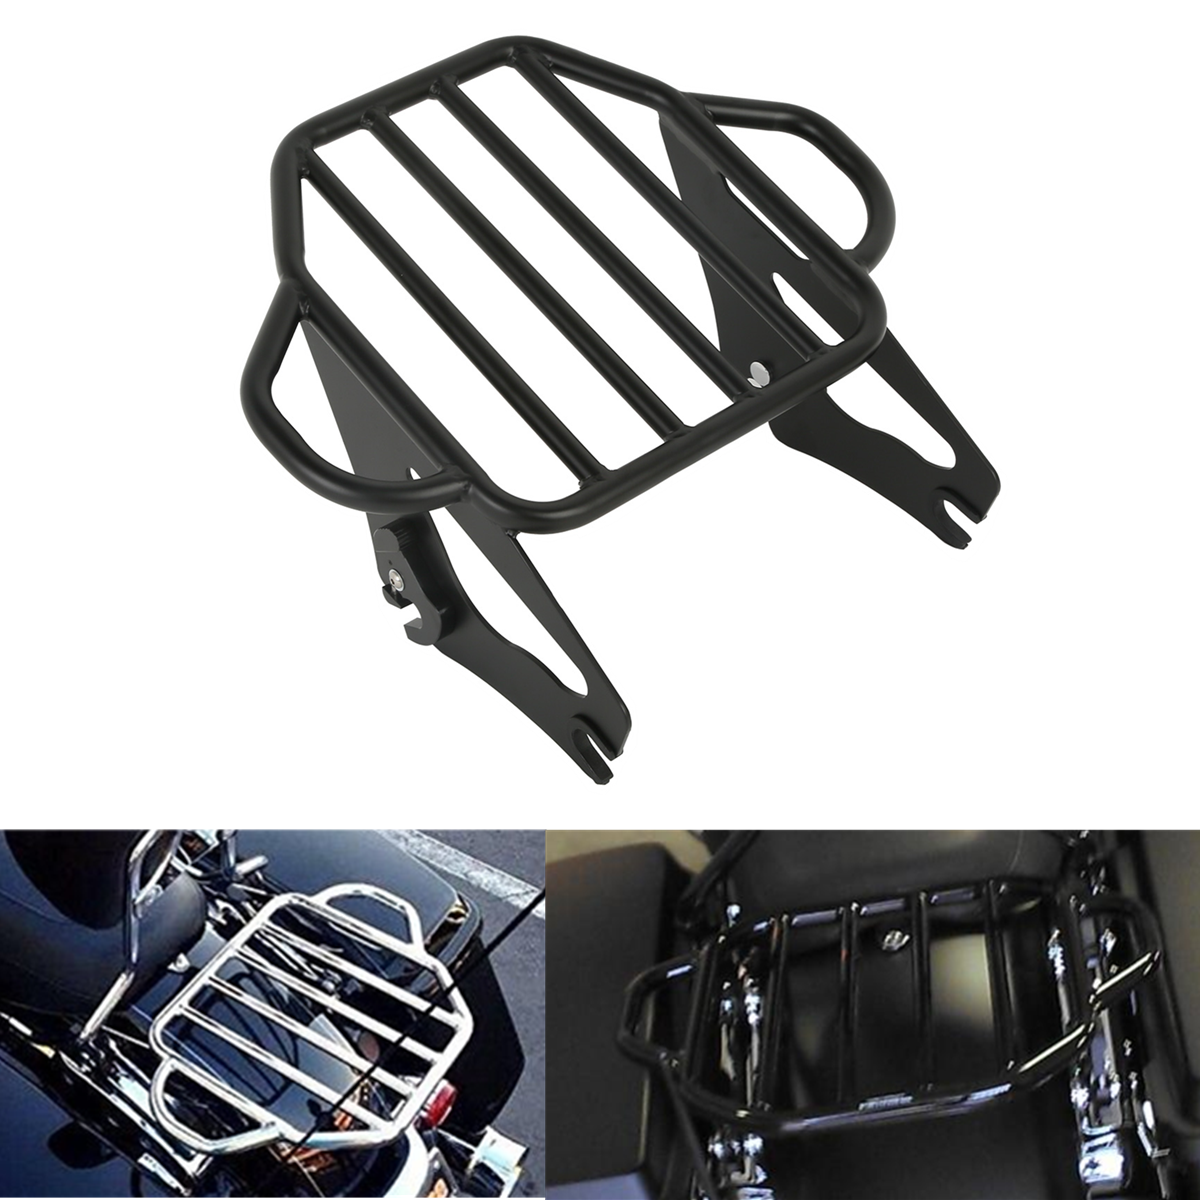 Motorcycle Detachable Two Up Tour Mounting Luggage Rack For Harley Electra Glide Road King Road Glide 2009 2019-in Covers & Ornamental Mouldings from Automobiles & Motorcycles